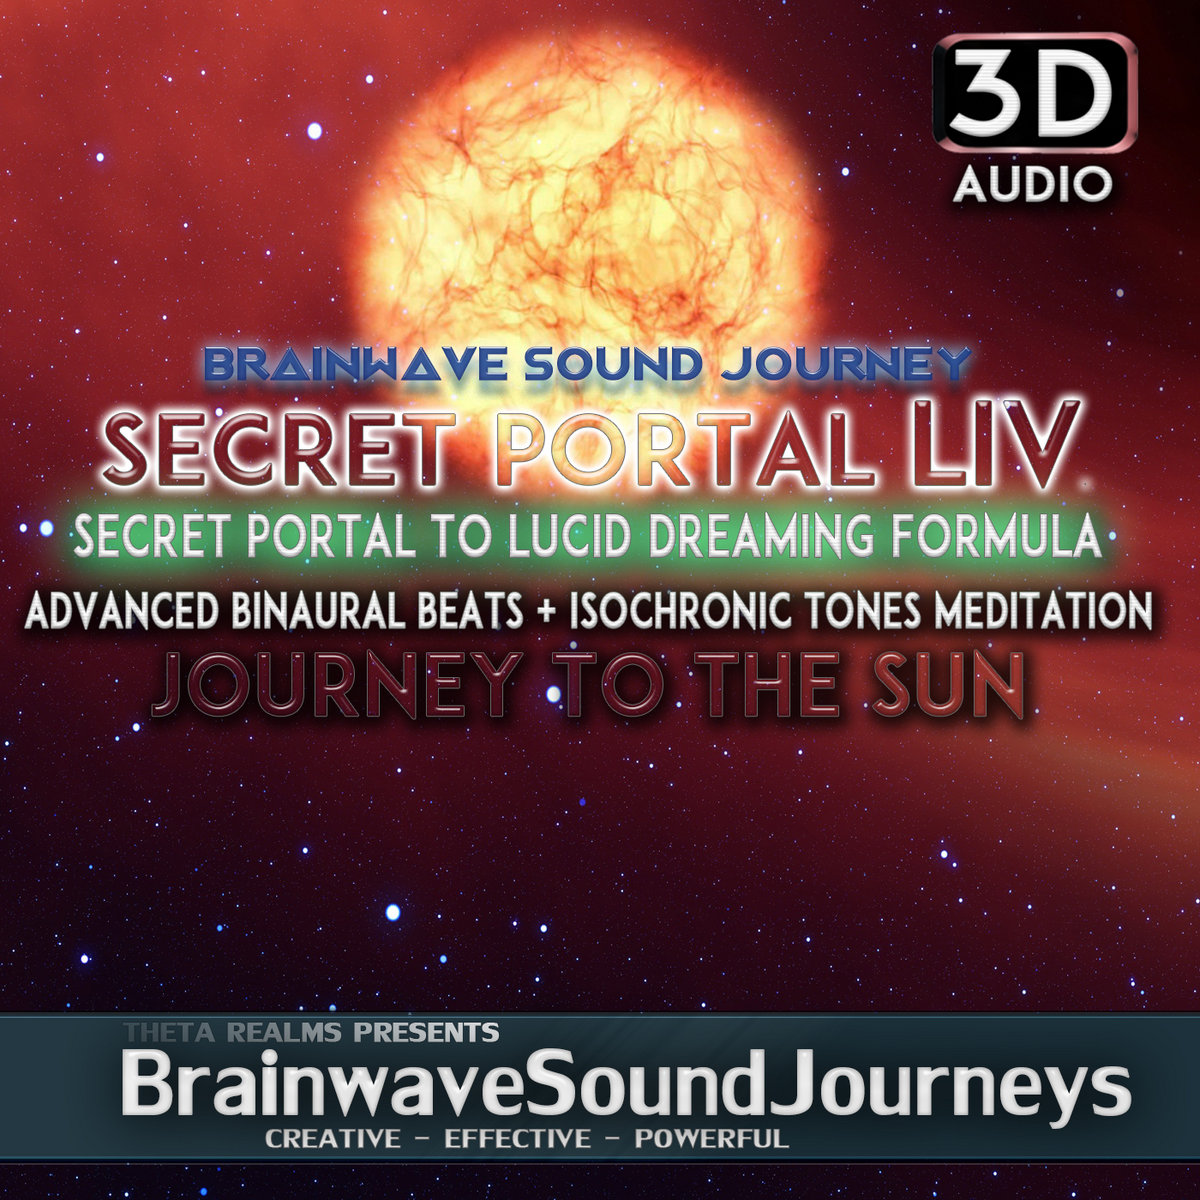 DEEP LUCID DREAMING JOURNEY TO THE SUN (3D AUDIO) Theta